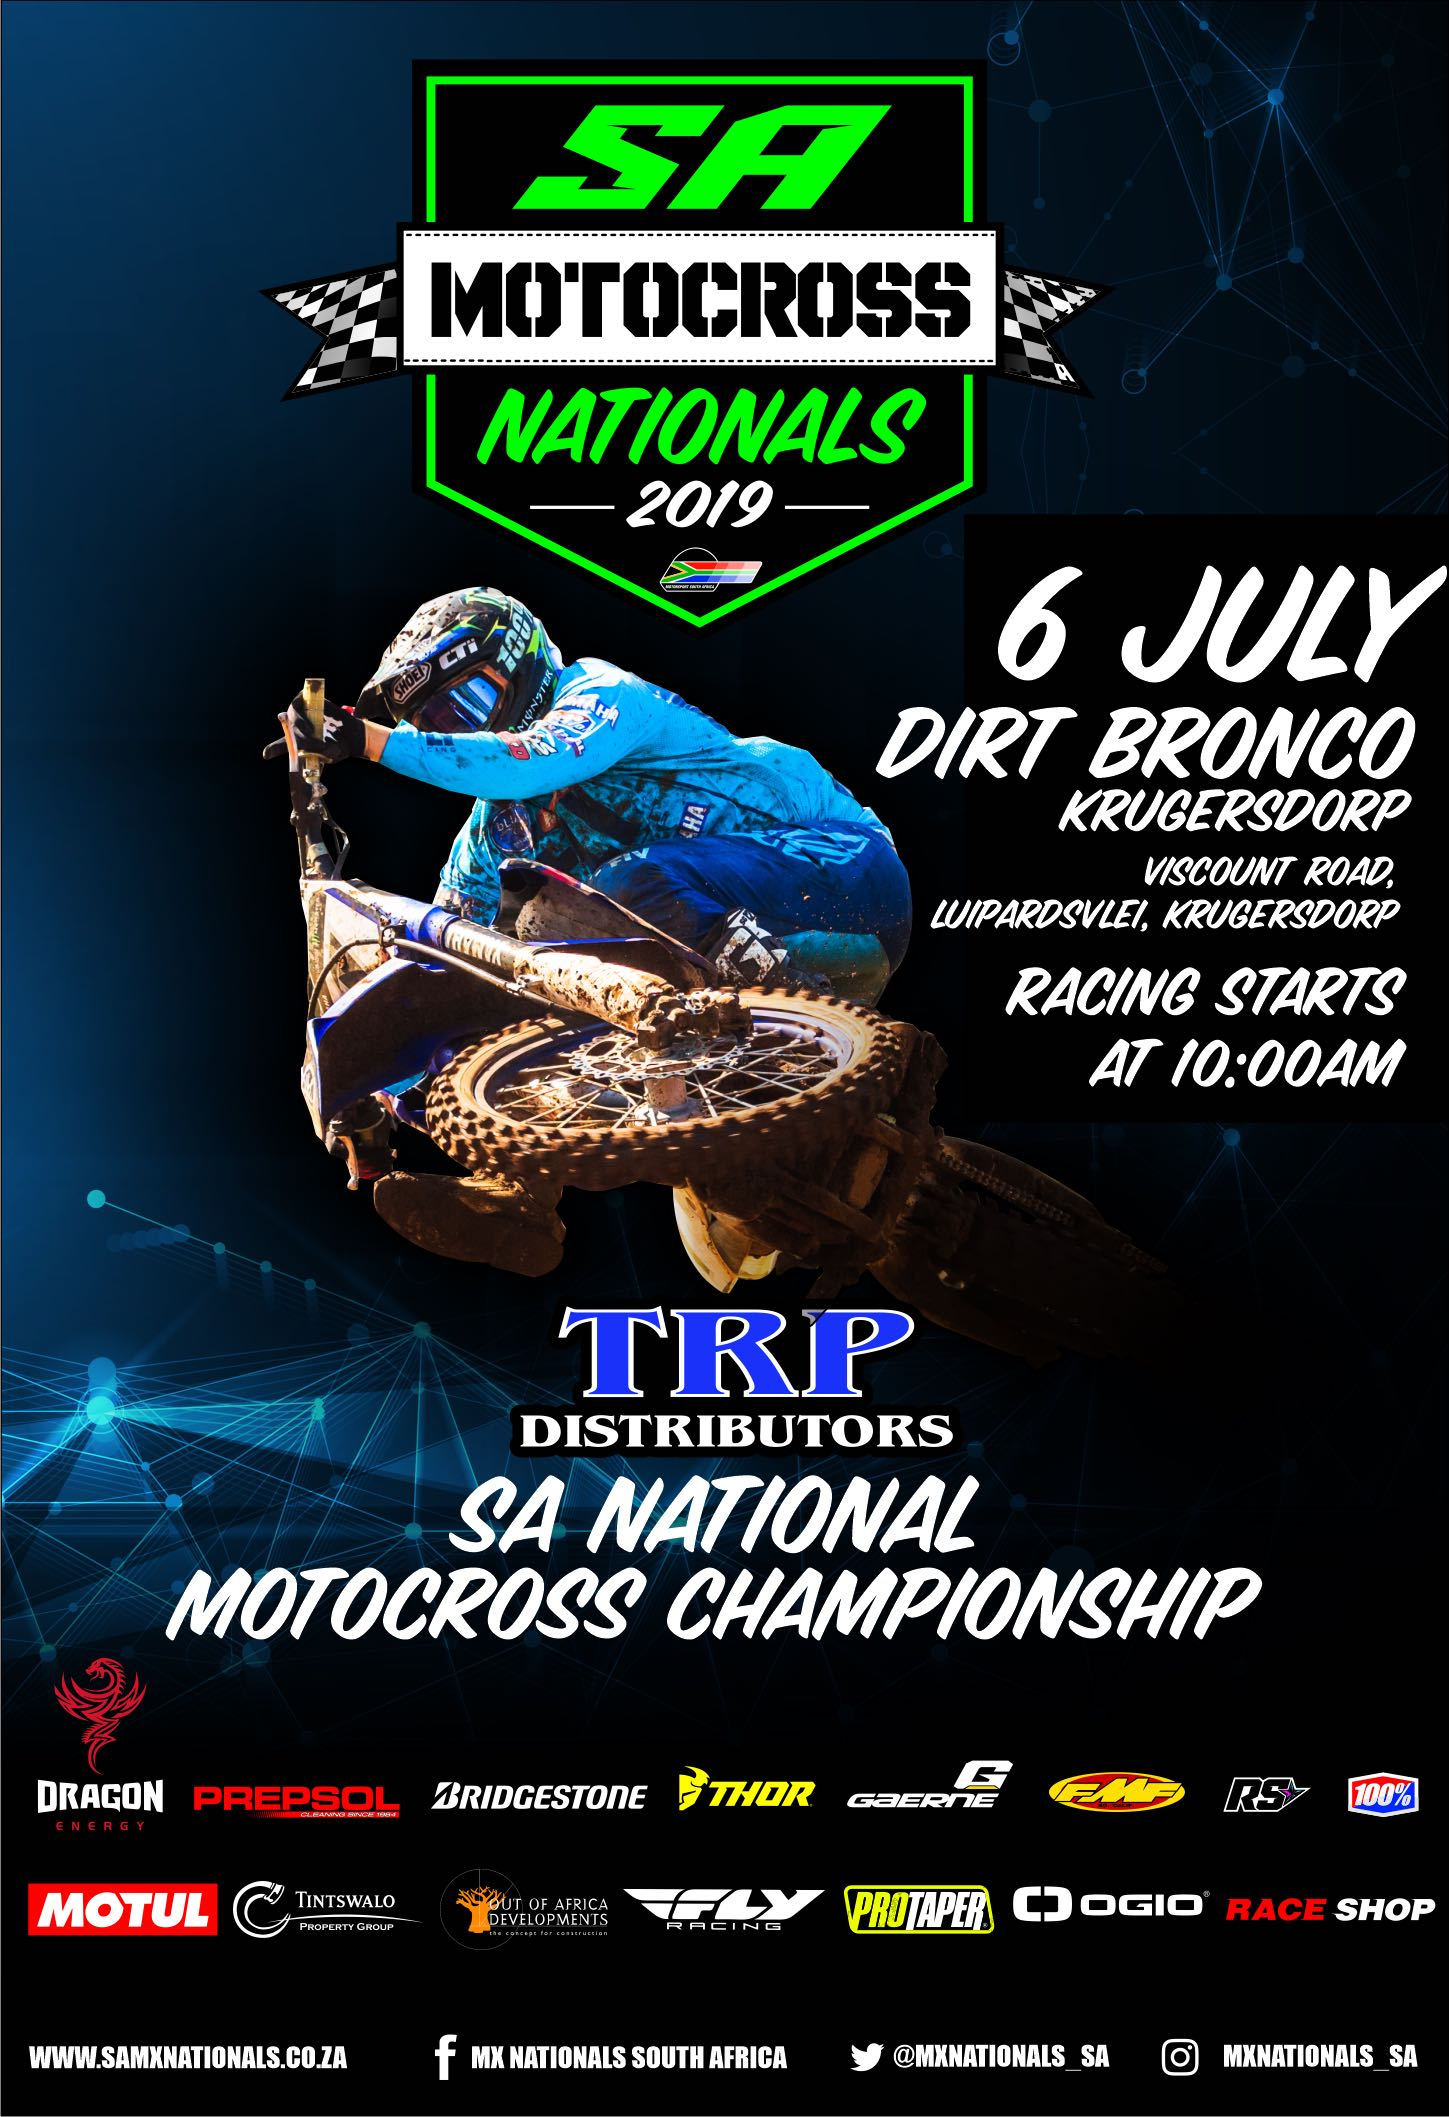 Round 4 of the 2019 TRP Distributors South African National Motocross Championship heads Dirt Broncos in Gauteng this Saturday, 6 July.